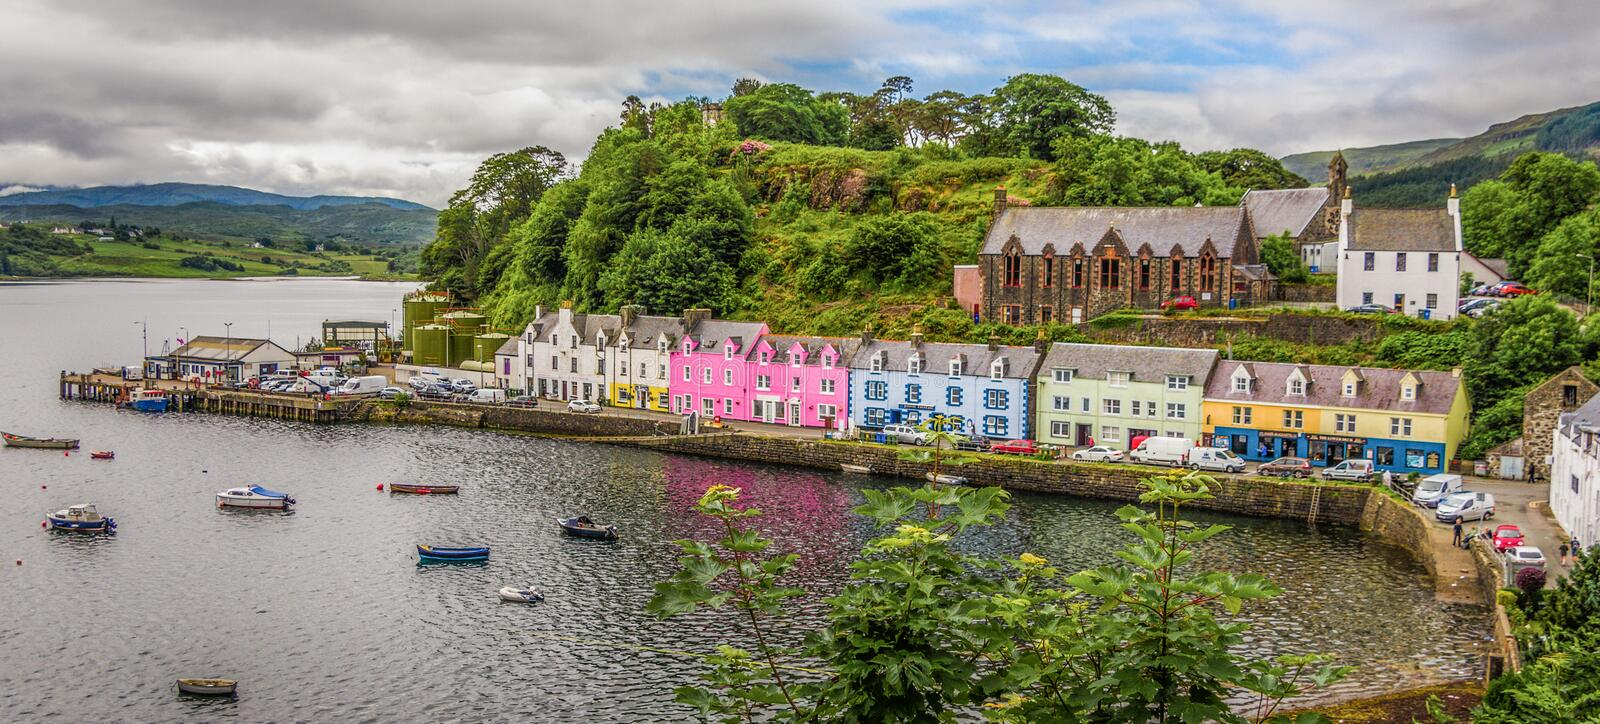 Colorful houses in Portree on Isle of Skye Schotland royalty free stock photography